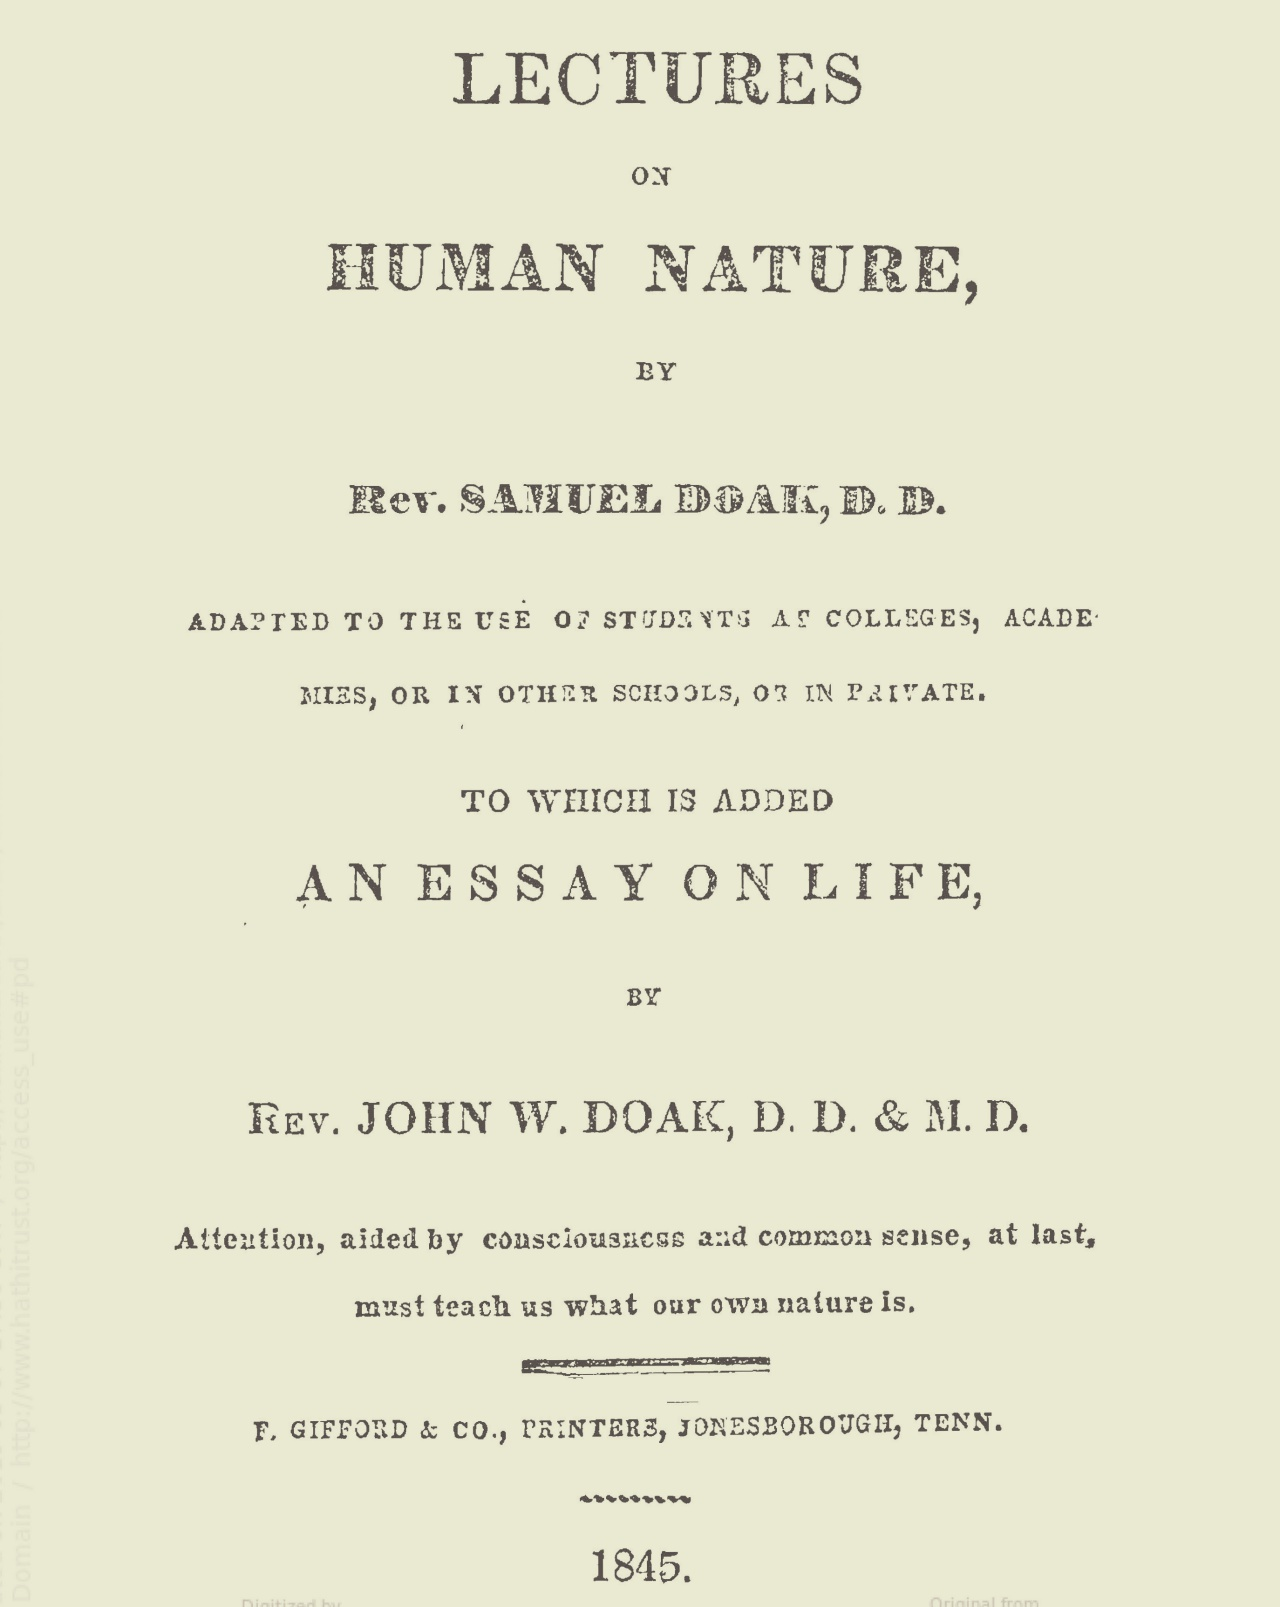 Doak, Samuel, Lectures on Human Nature Title Page.jpg